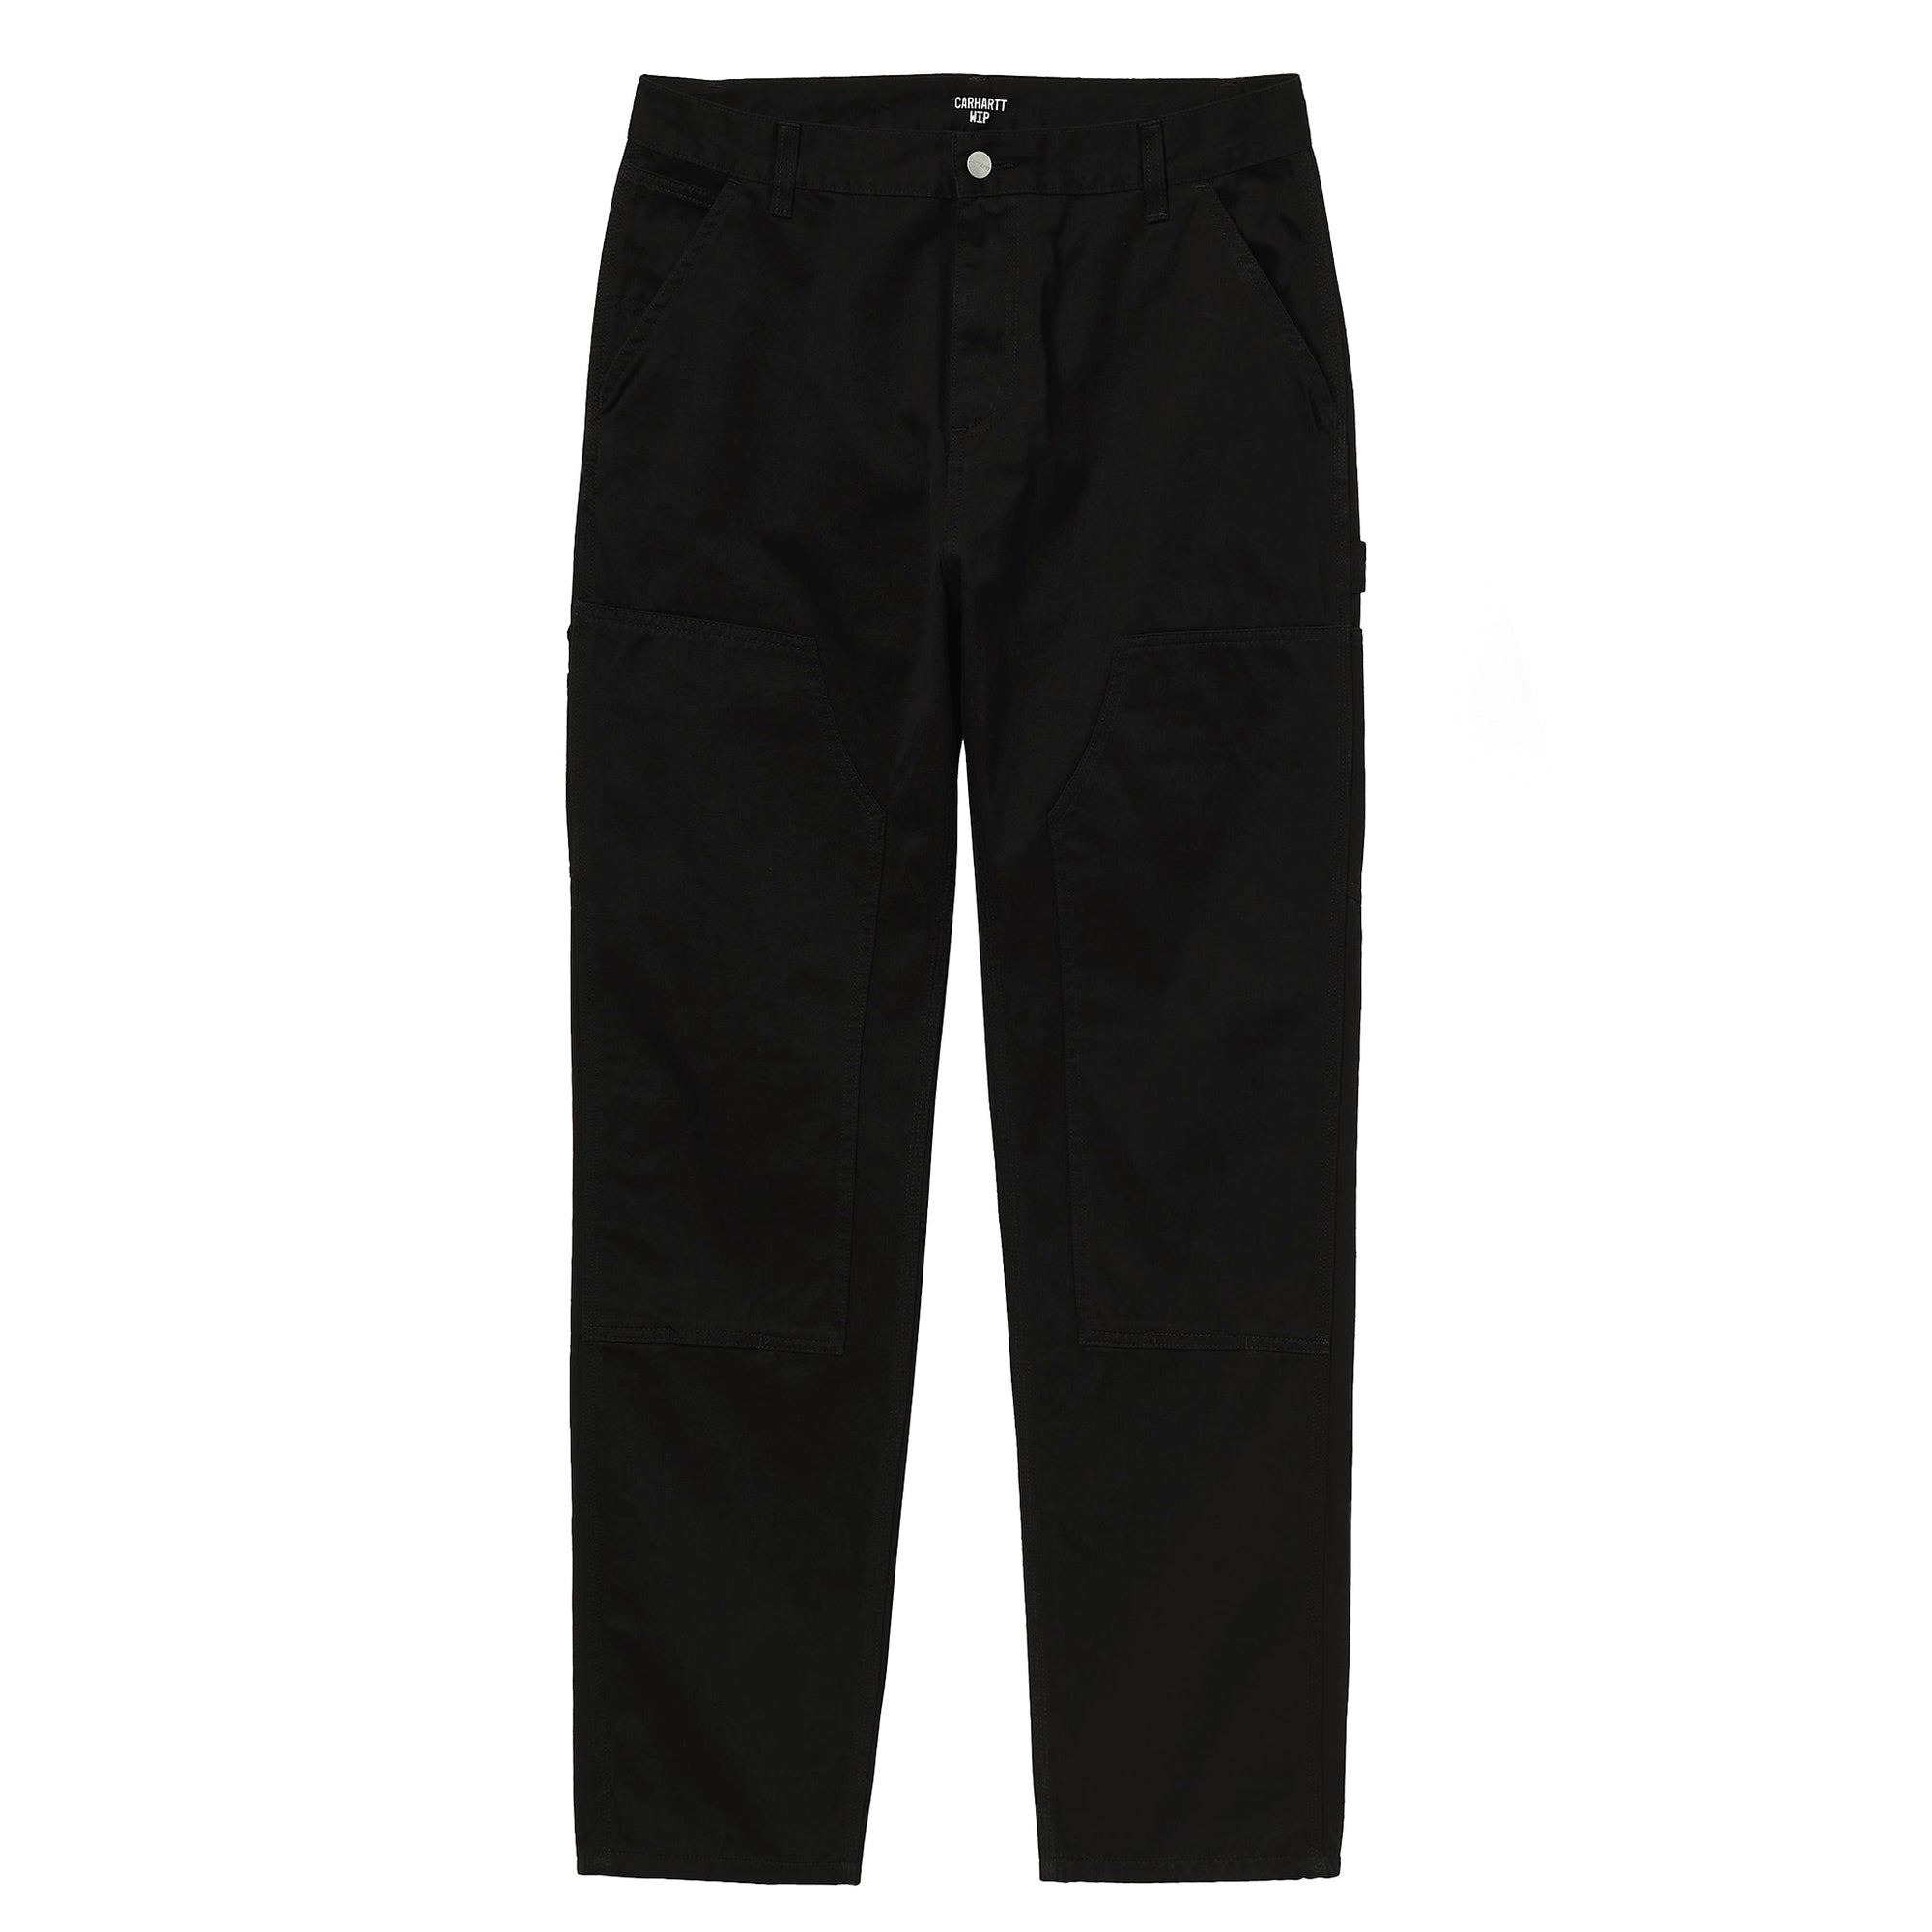 Carhartt WIP Ruck Double Knee Pant: Black Stone Wash - The Union Project